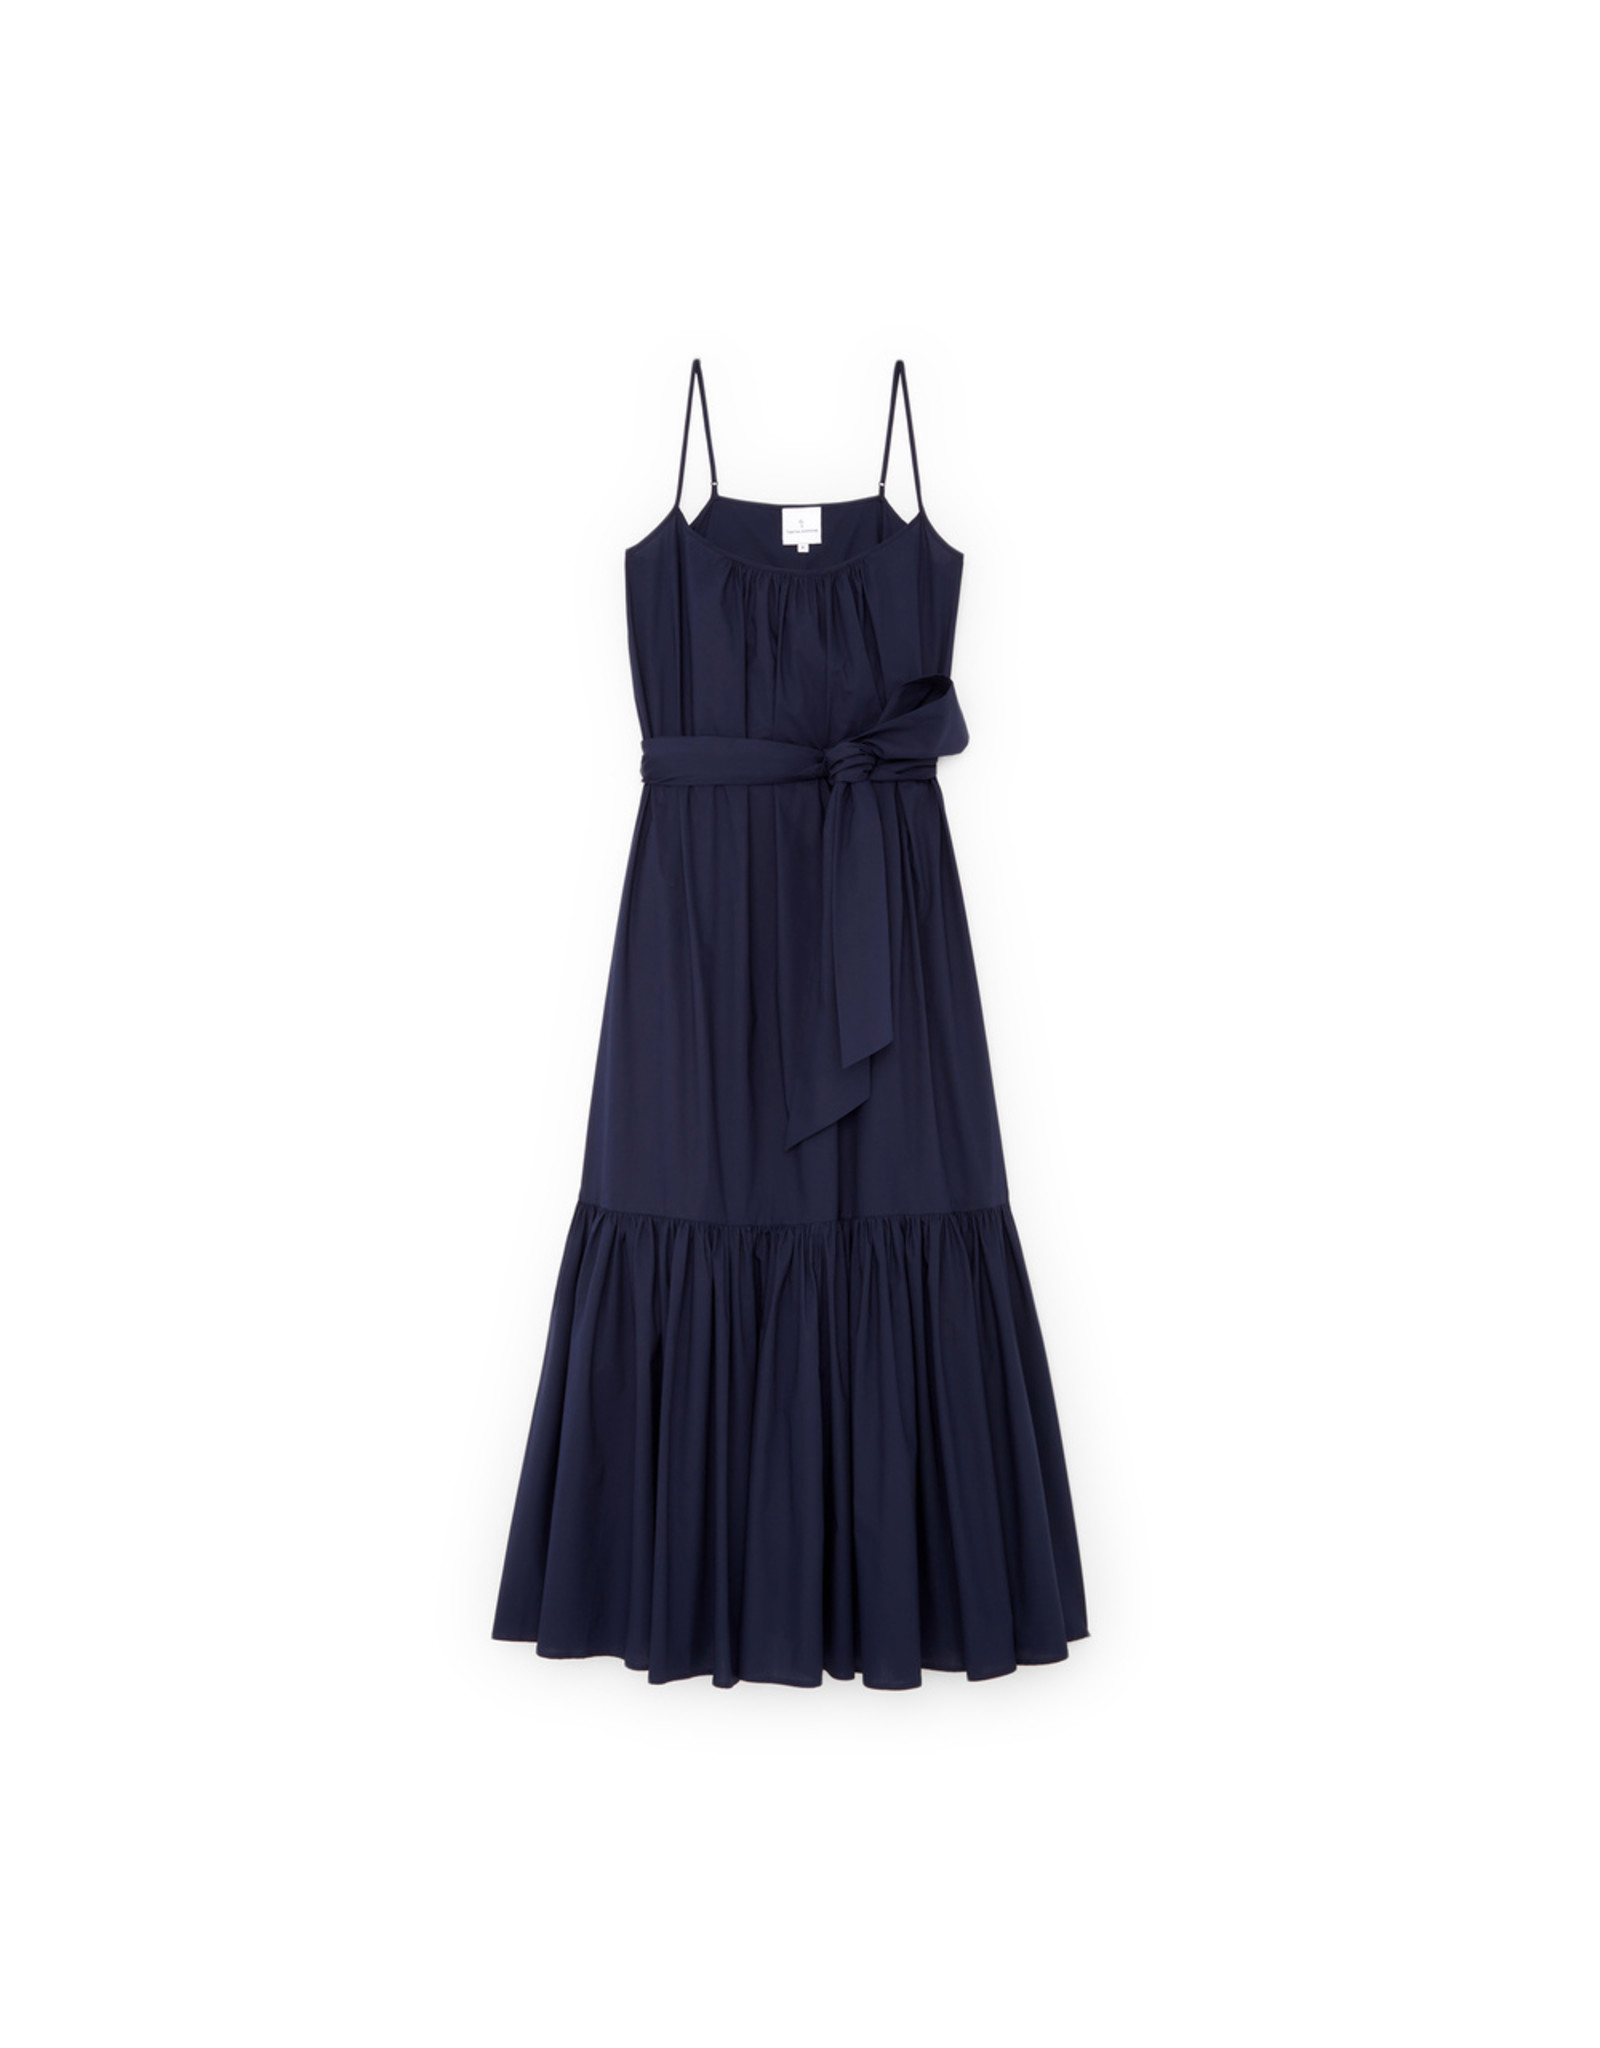 G. Label Capri Skinny Strap Dress (Color: Navy, Size: S)